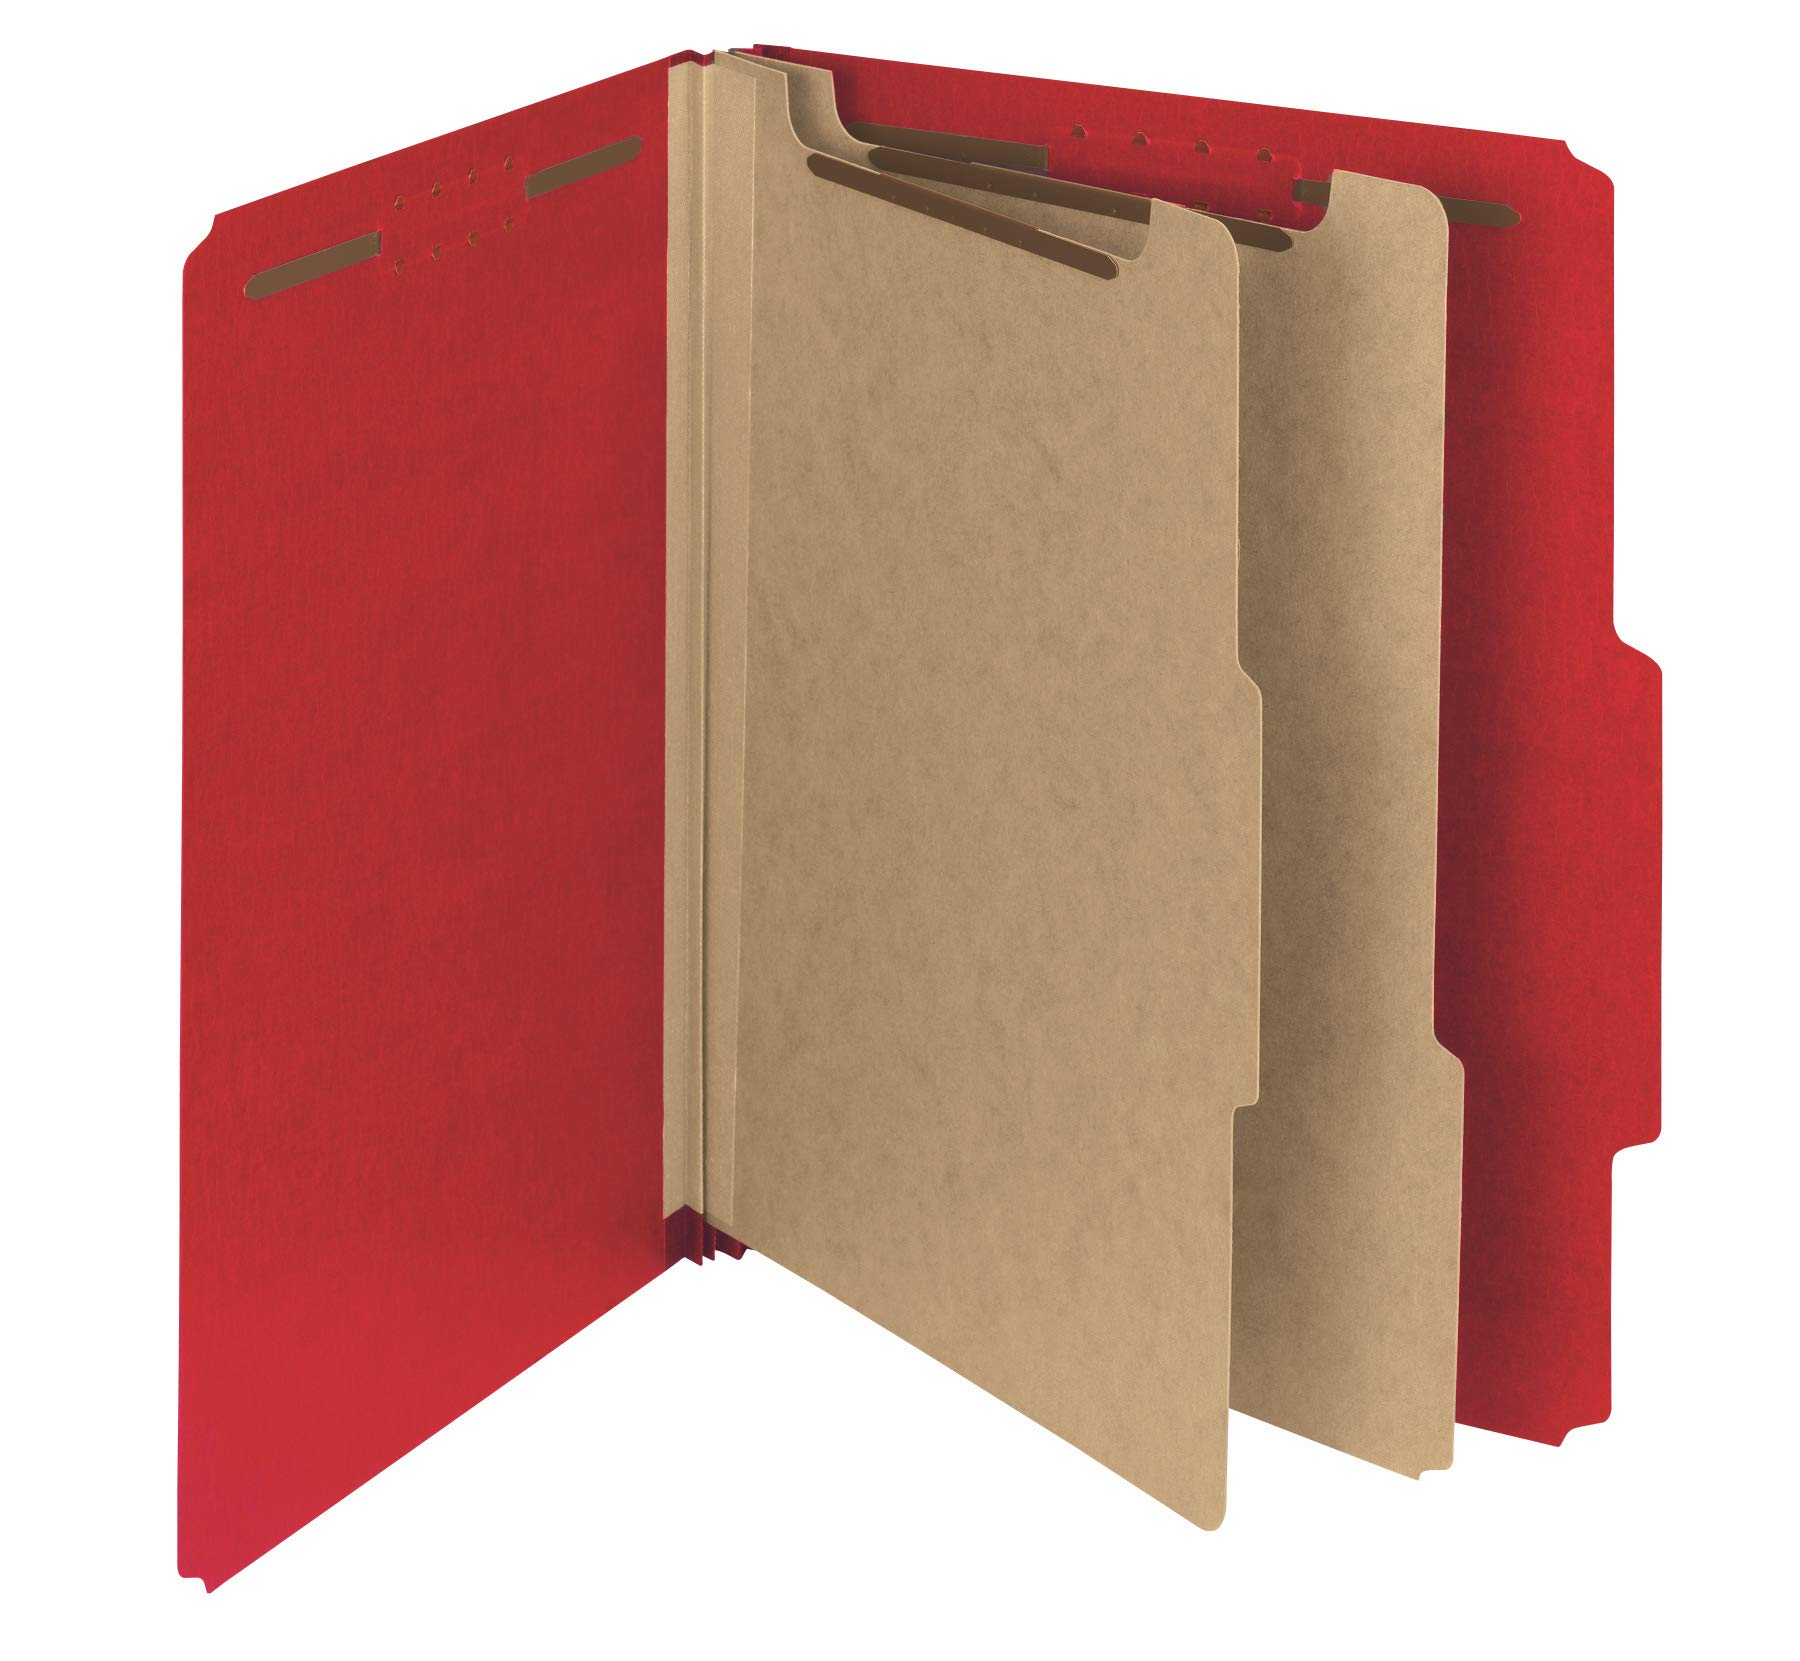 Smead 100% Recycled Pressboard Classification File Folder, 2 Dividers, 2'' Expansion, Letter Size, Bright Red, 10 per Box (14061) by Smead